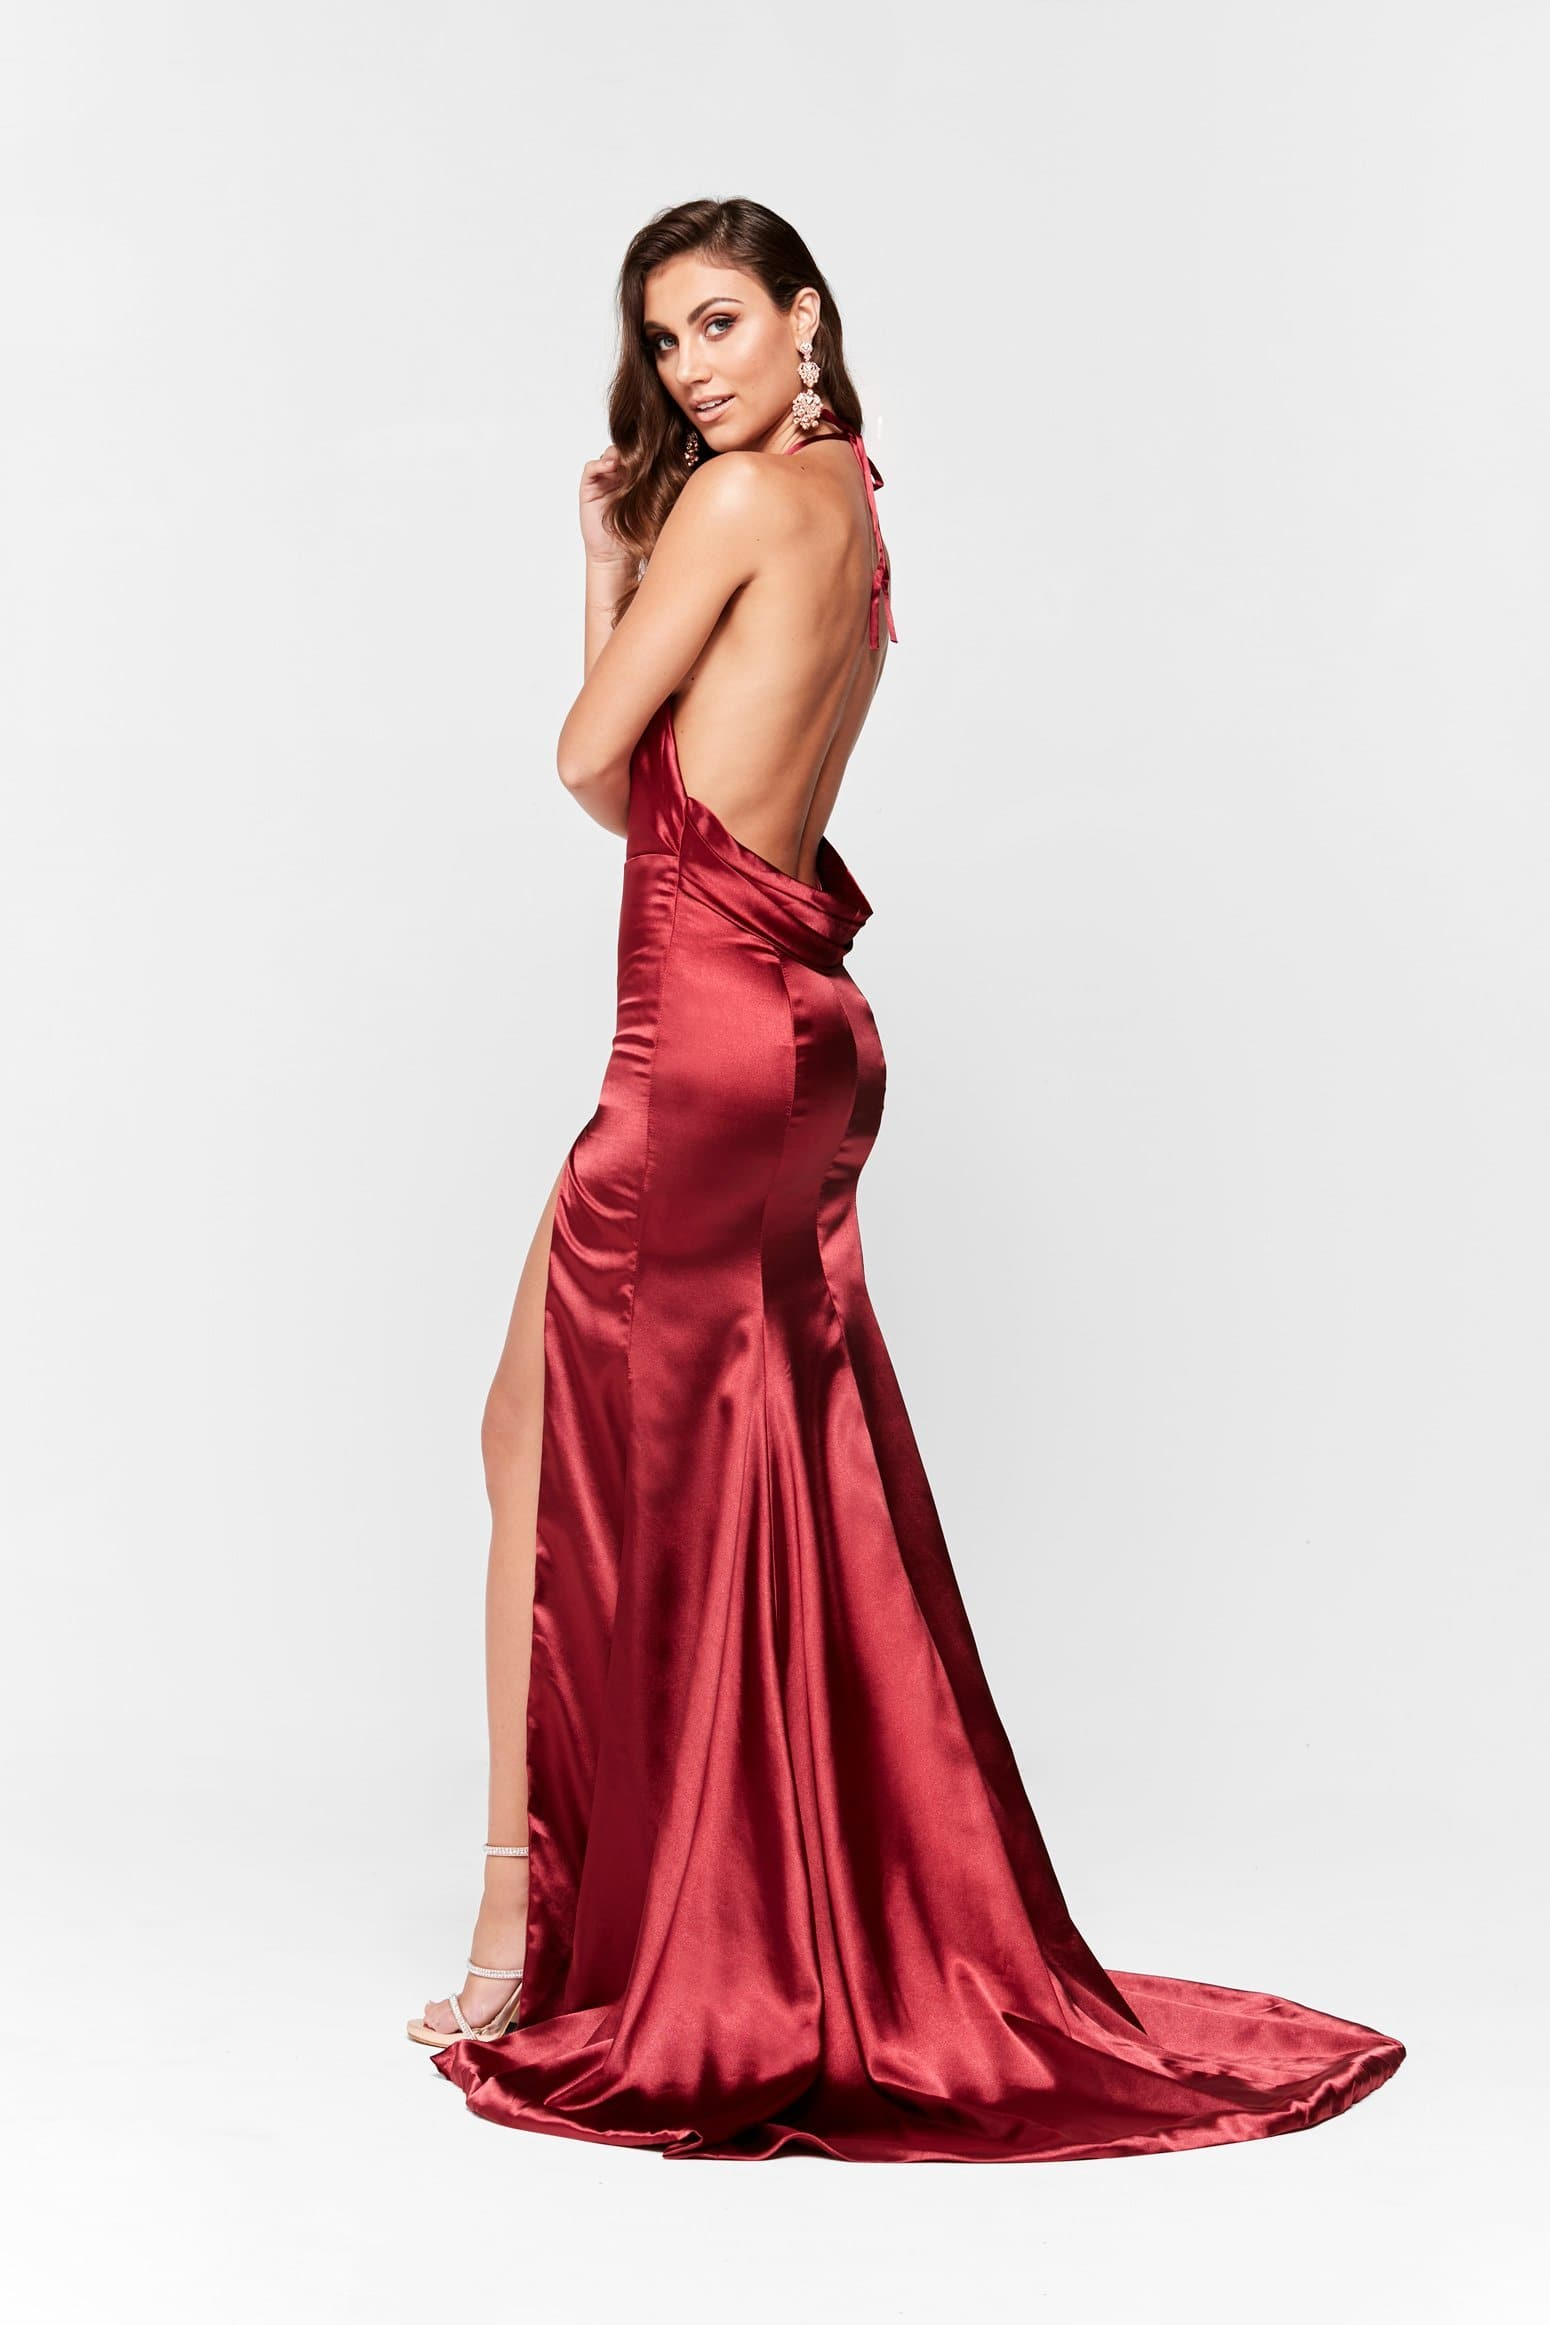 A&N Luxe Nala Satin Gown - Deep Red